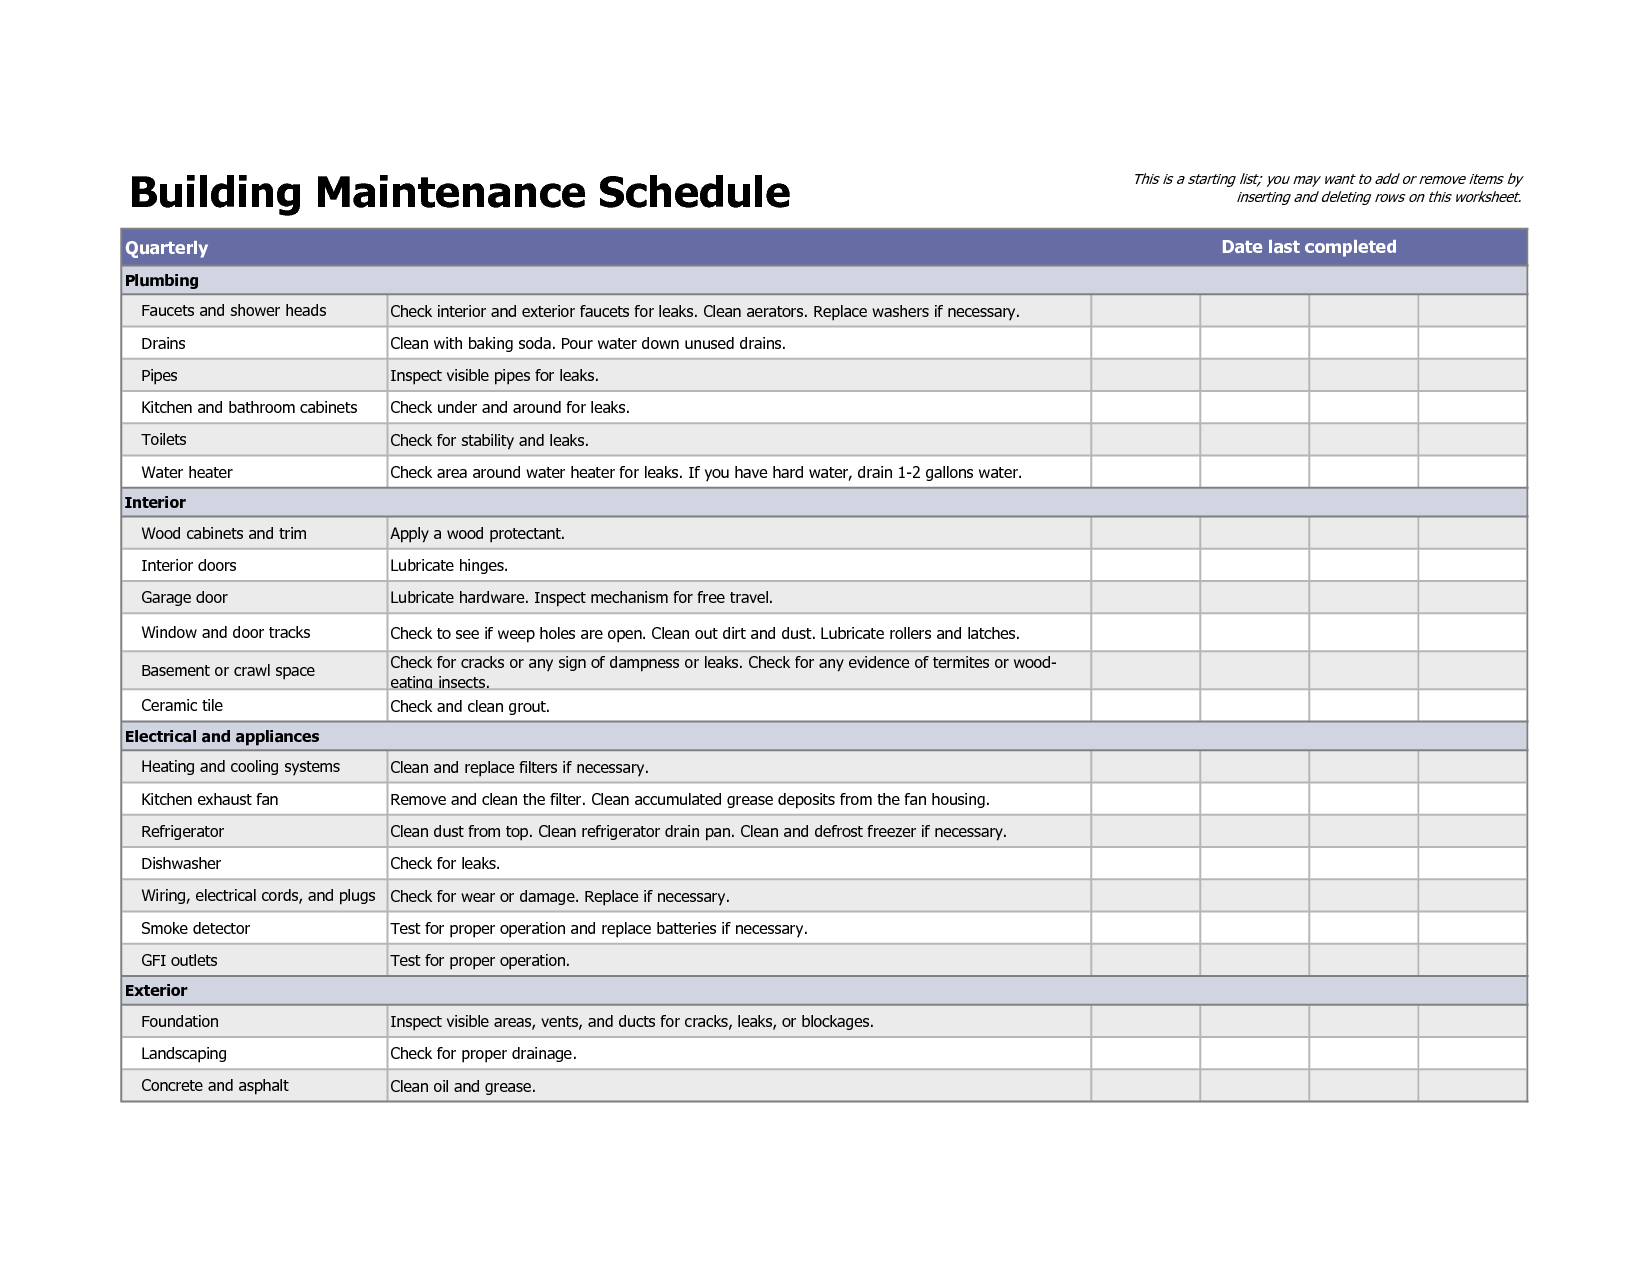 Building Preventive Maintenance Schedule Template